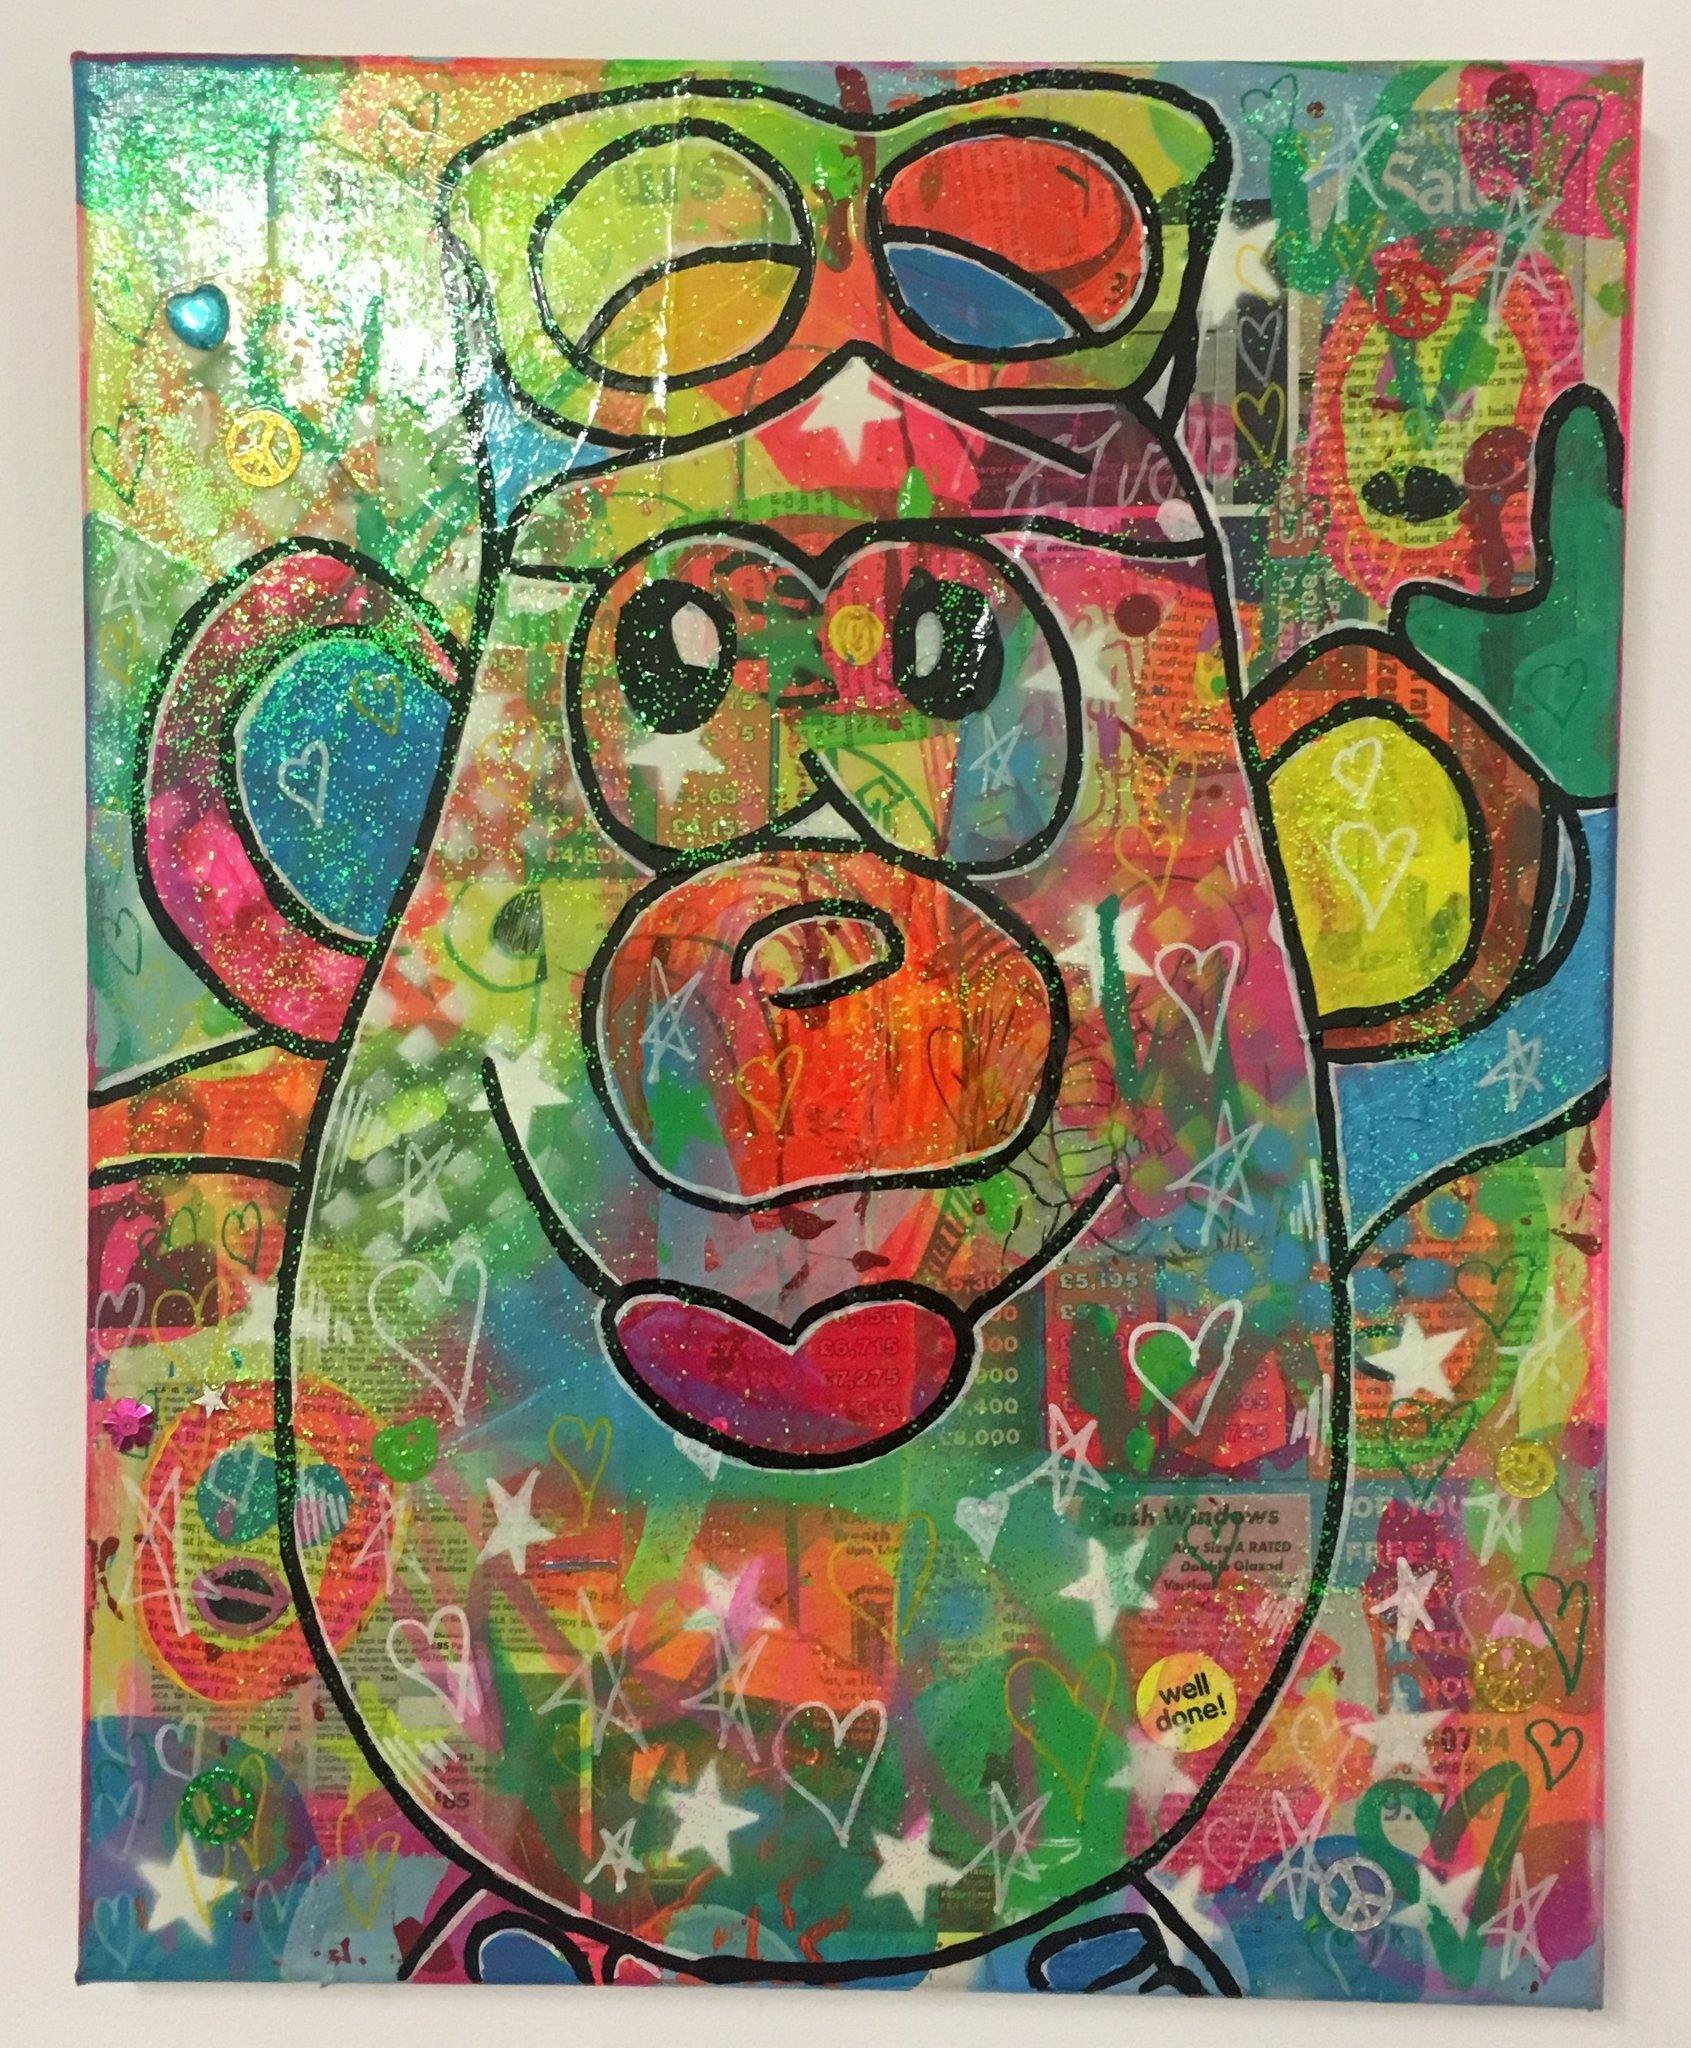 Best foot forward by Barrie J Davies 2017, Mixed media painting on canvas, 40cm x 50cm, unframed. Barrie J Davies is an Artist - Pop Art and Street art inspired Artist based in Brighton England UK - Pop Art Paintings, Street Art Prints & Editions available.